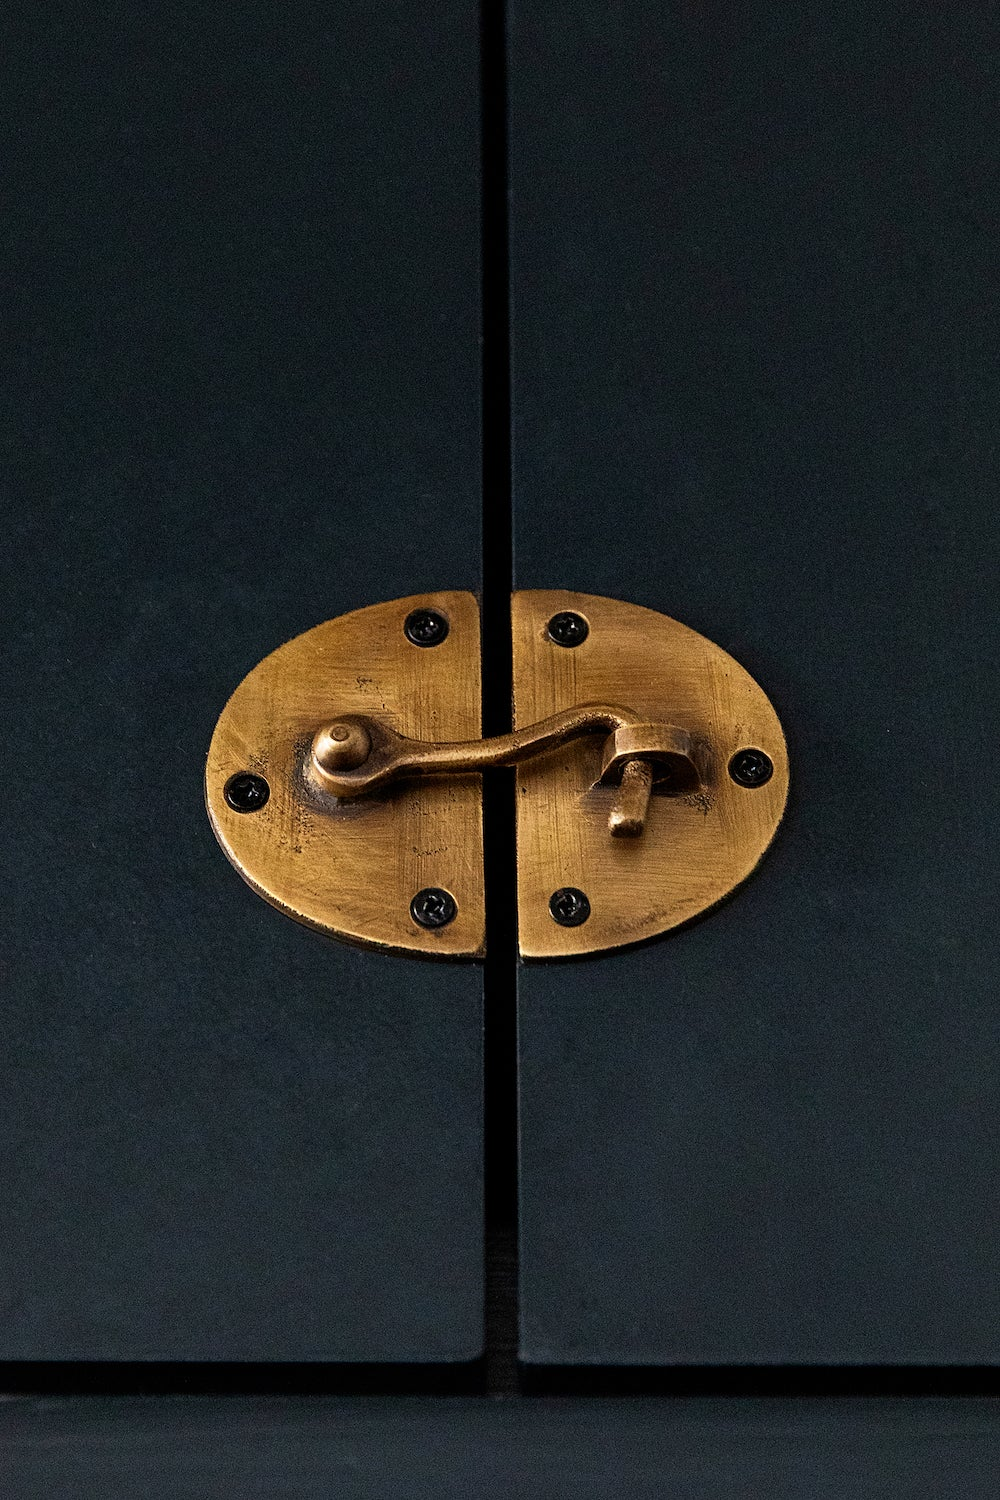 detail of brass latch